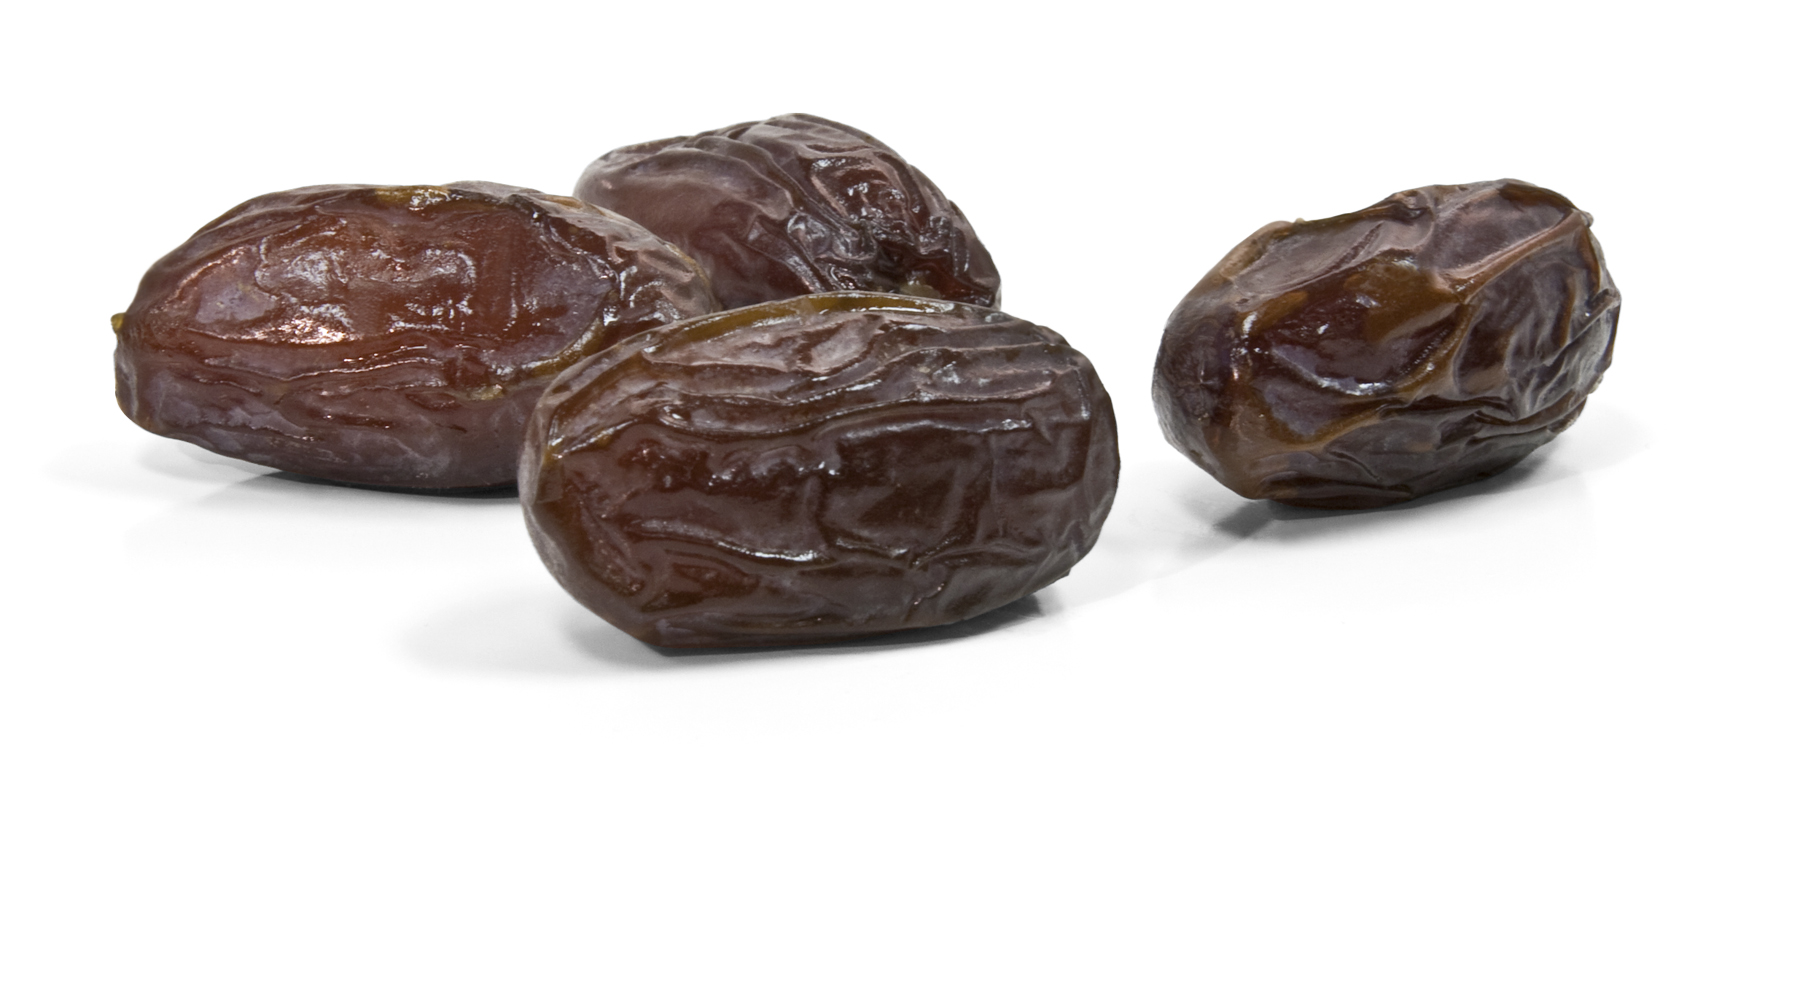 Frieda's Specialty Produce - Medjool Dates